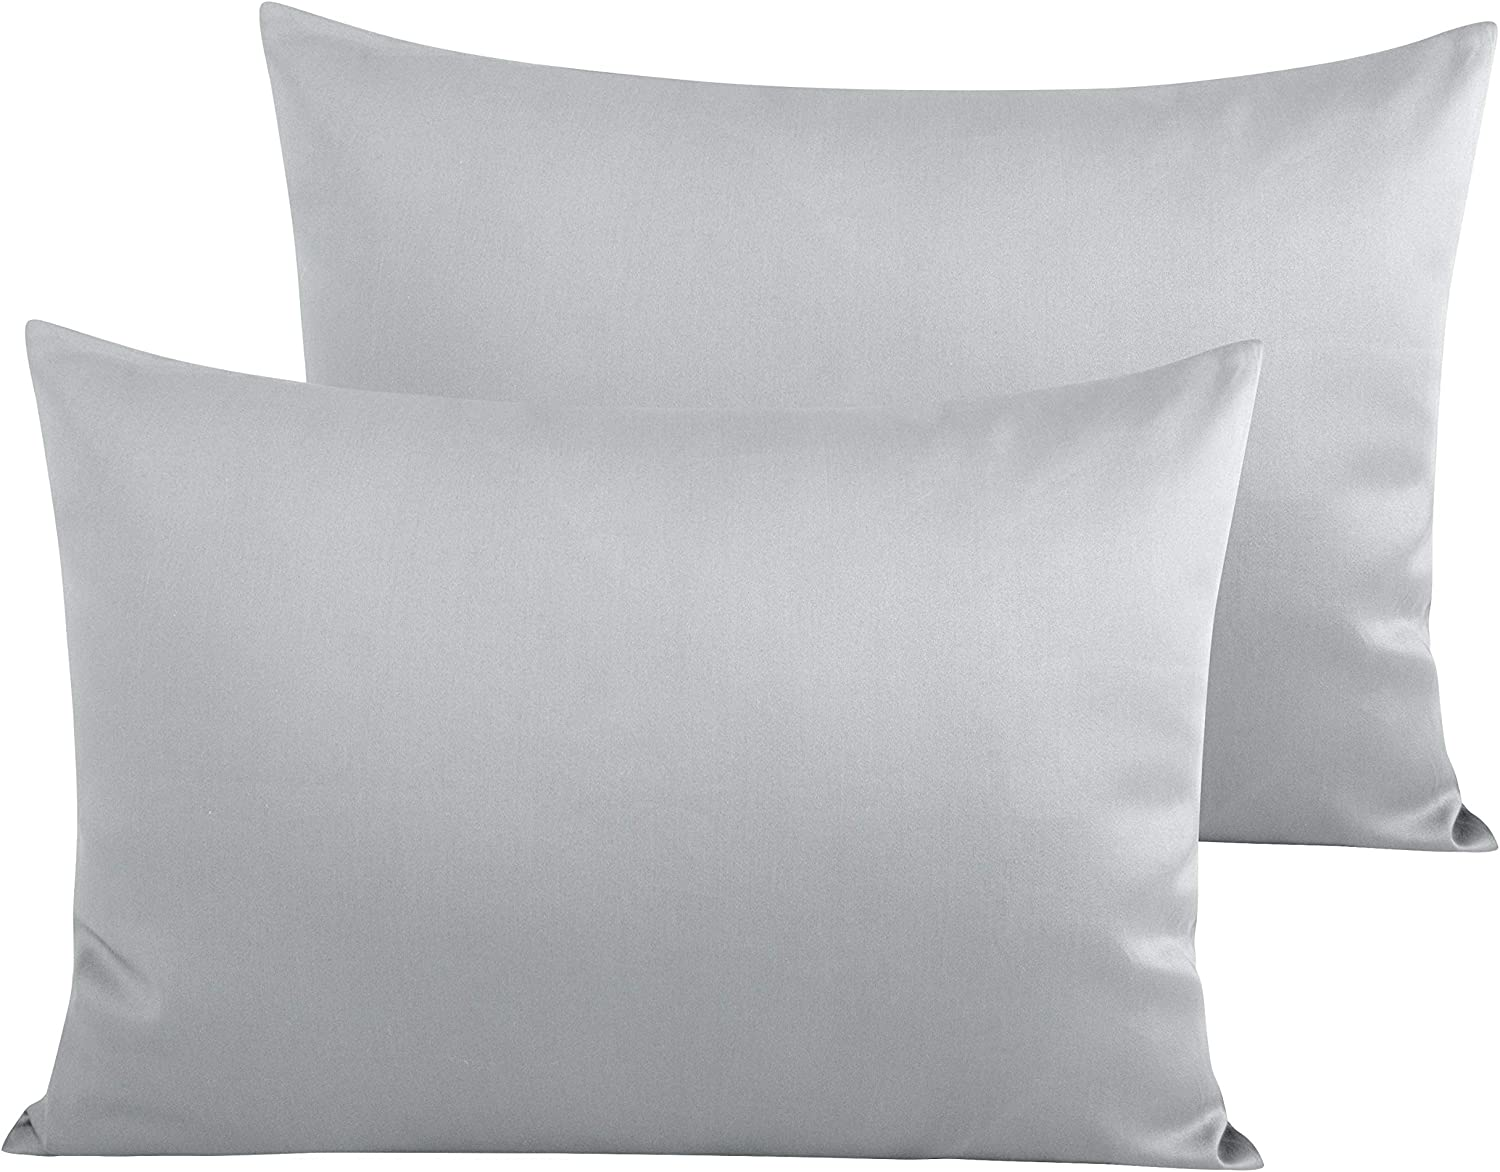 NTBAY 500 Thread Count Cotton Travel Pillowcases Pack Toddler 2 Wholesale New product type